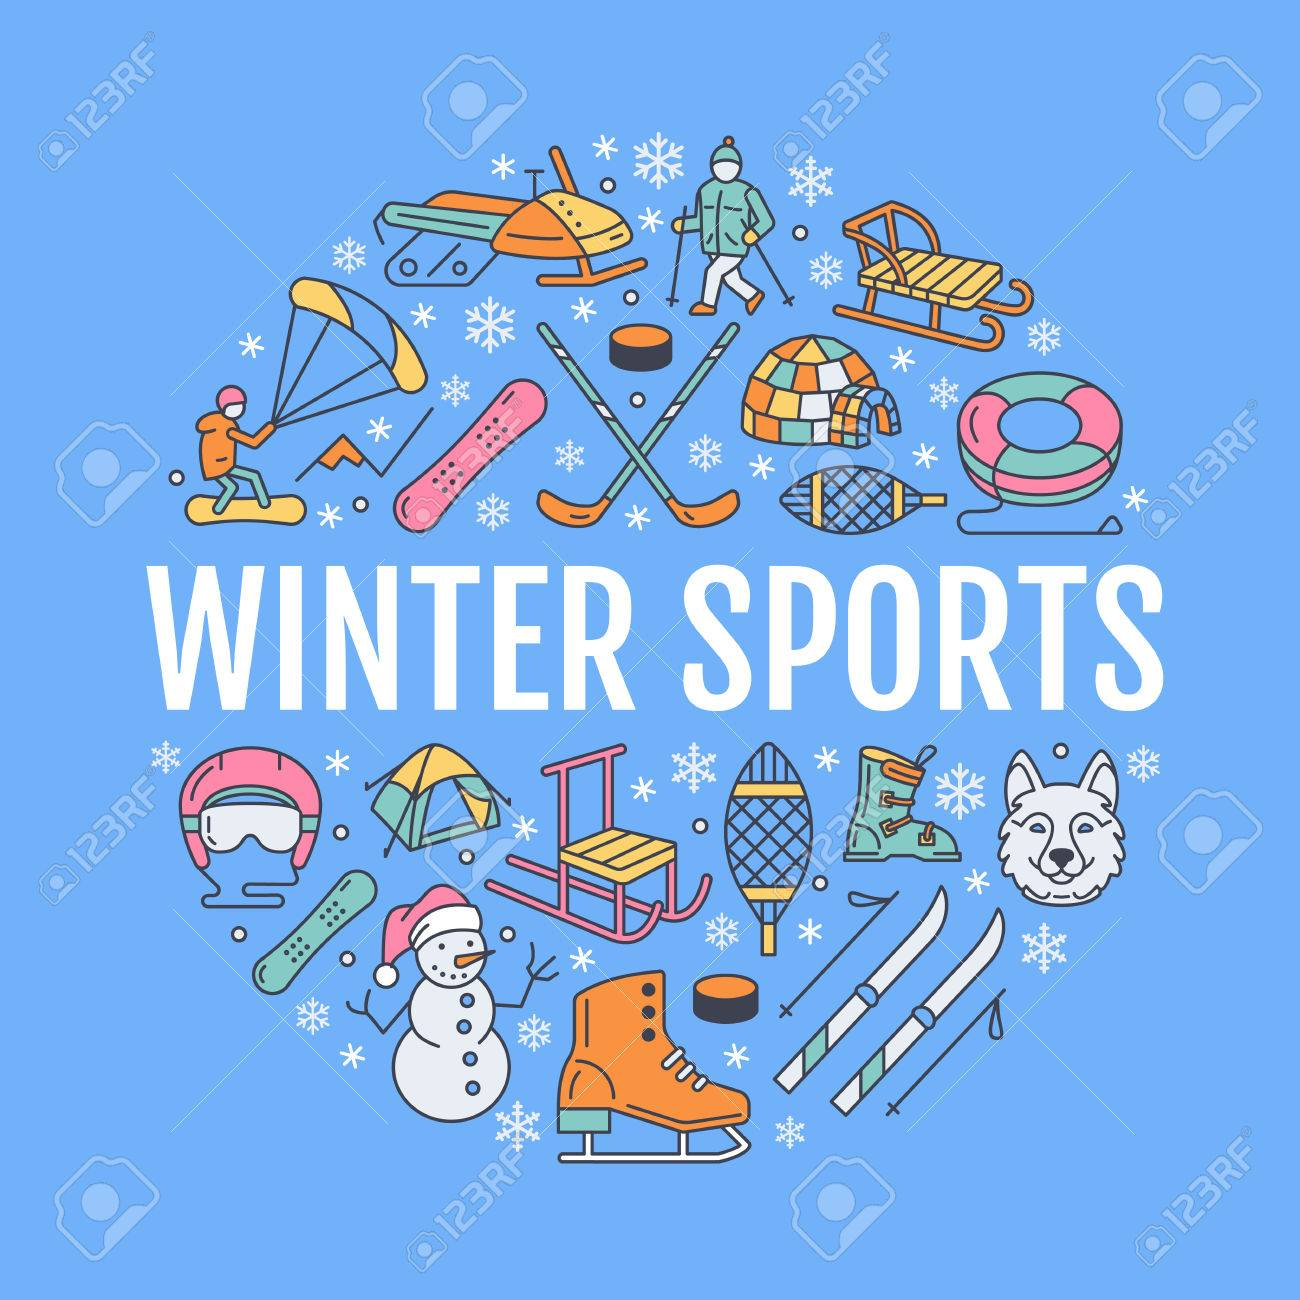 Winter sports banner, equipment rent at ski resort. Vector line icon of skates, hockey sticks, sleds, snowboard, snow tubing hire. Cold season outdoor activities template with place for text - 68212329